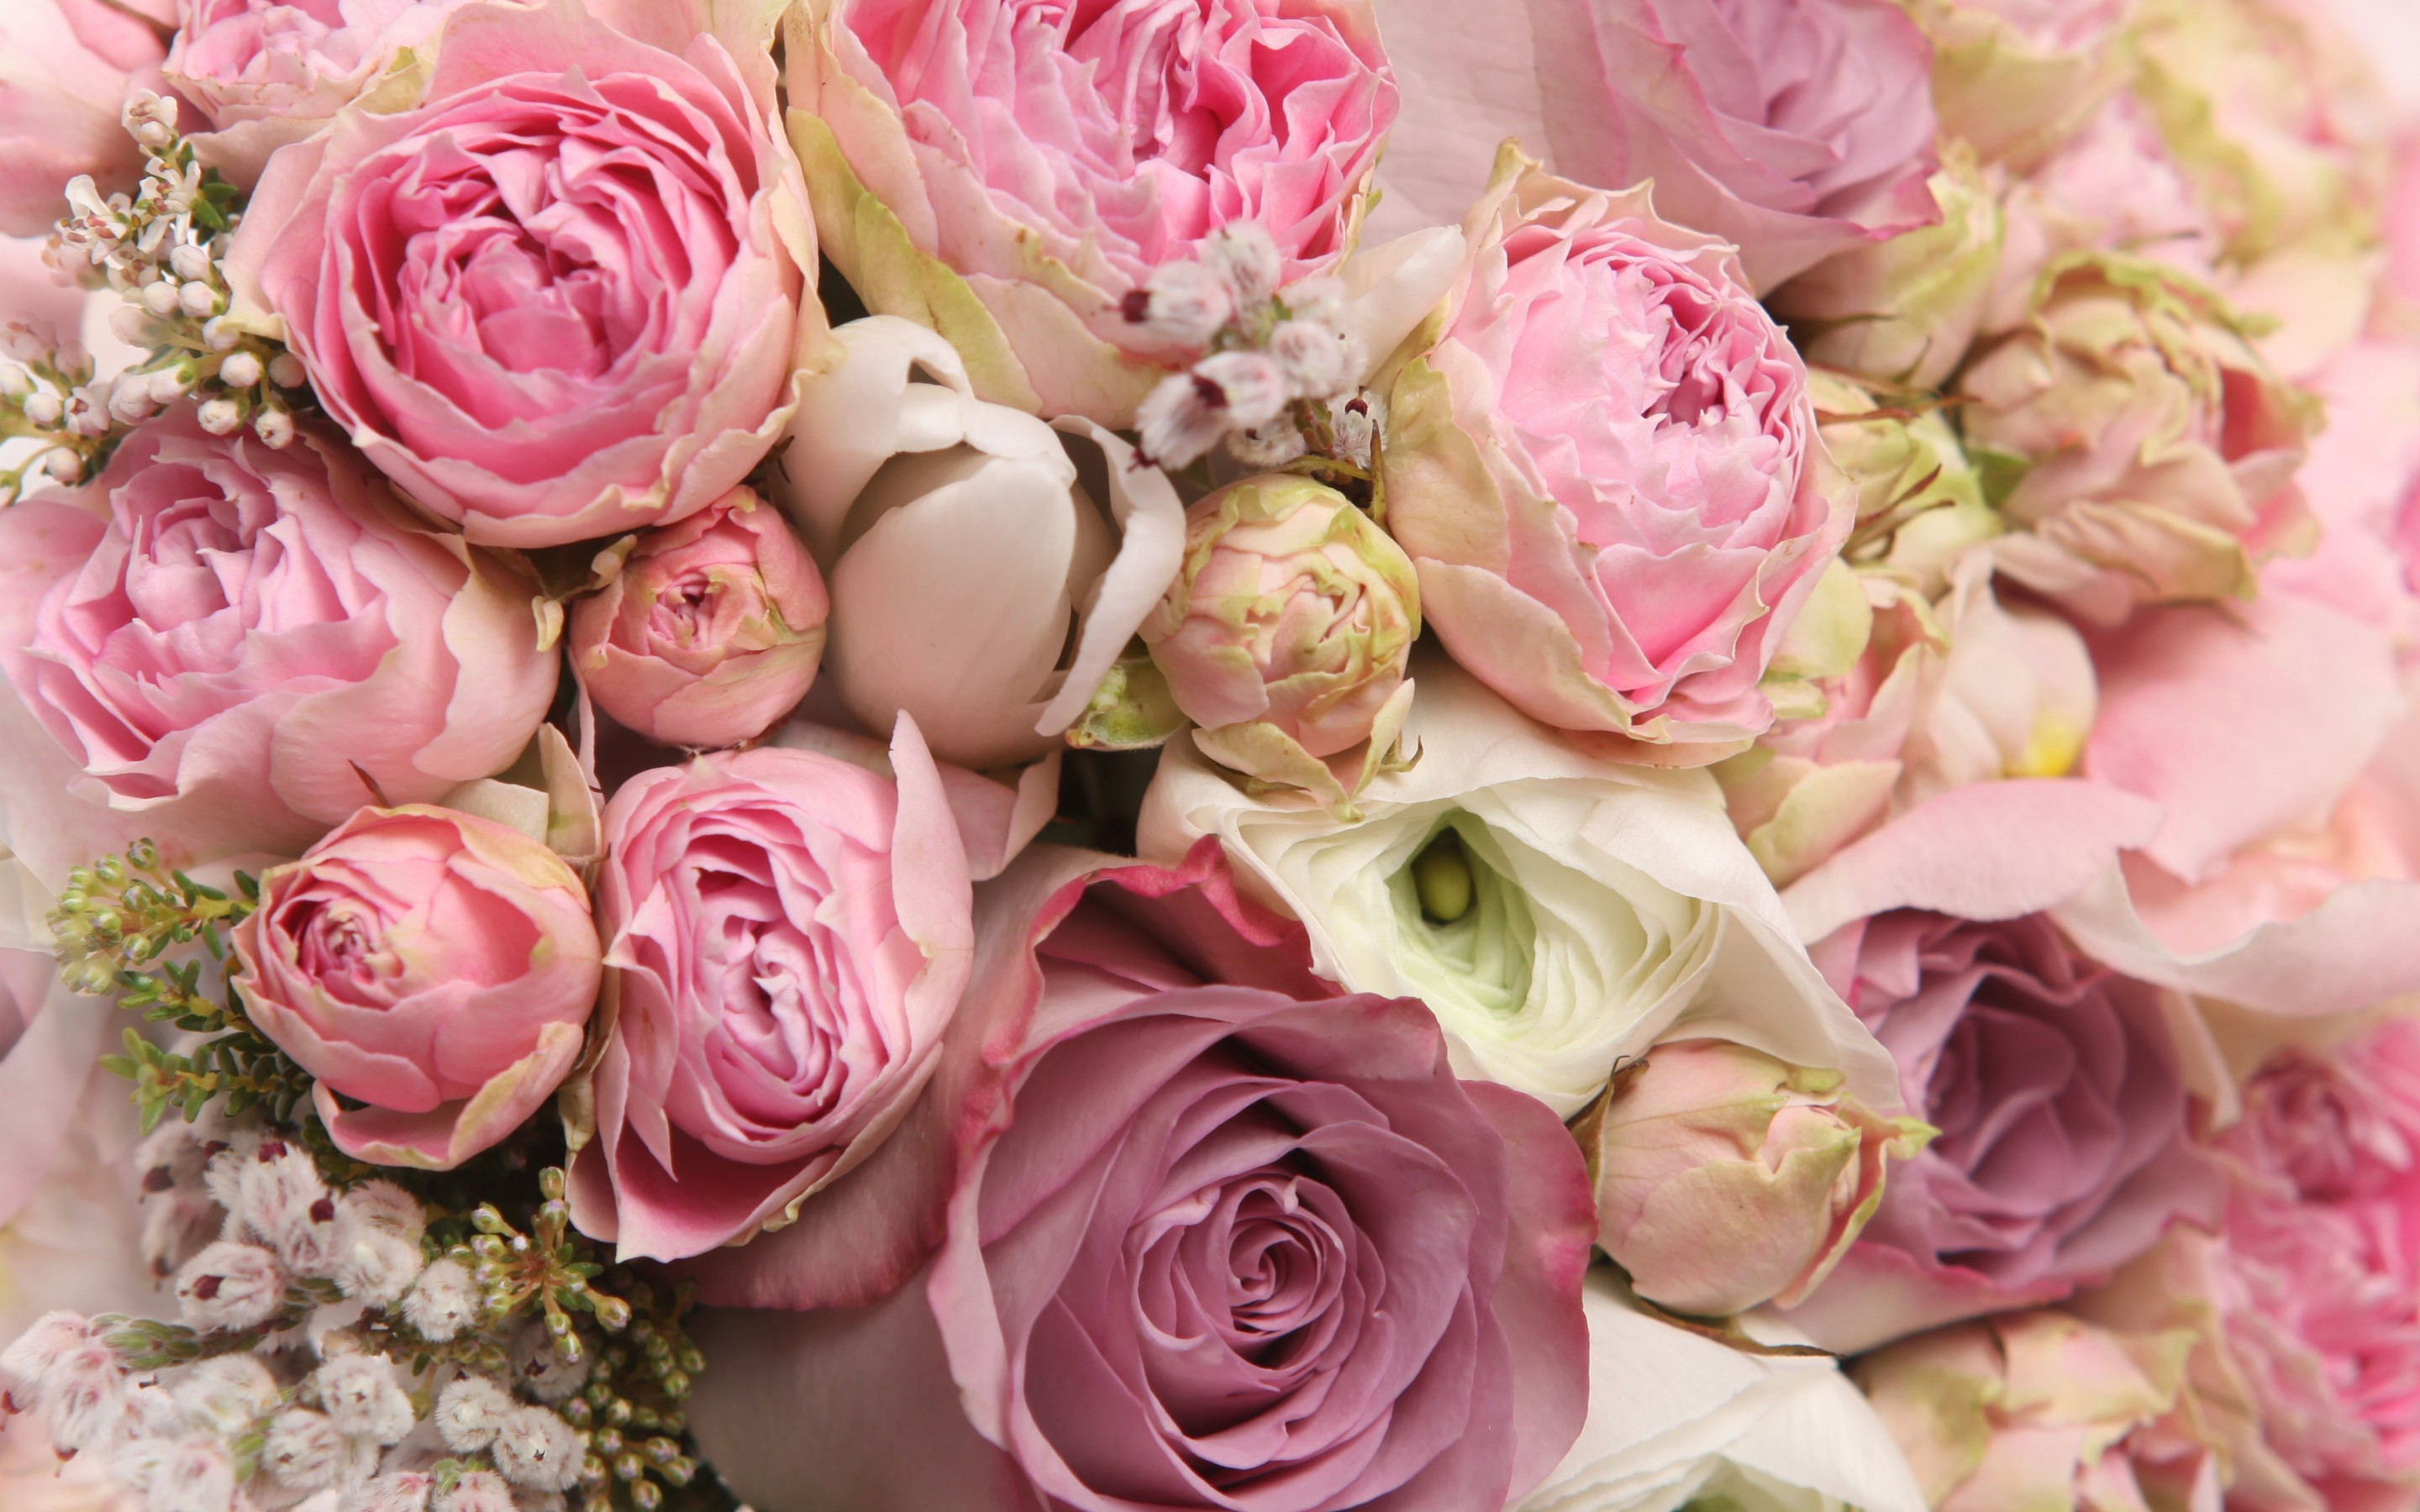 Bouquet Of Flowers Wallpapers High Quality